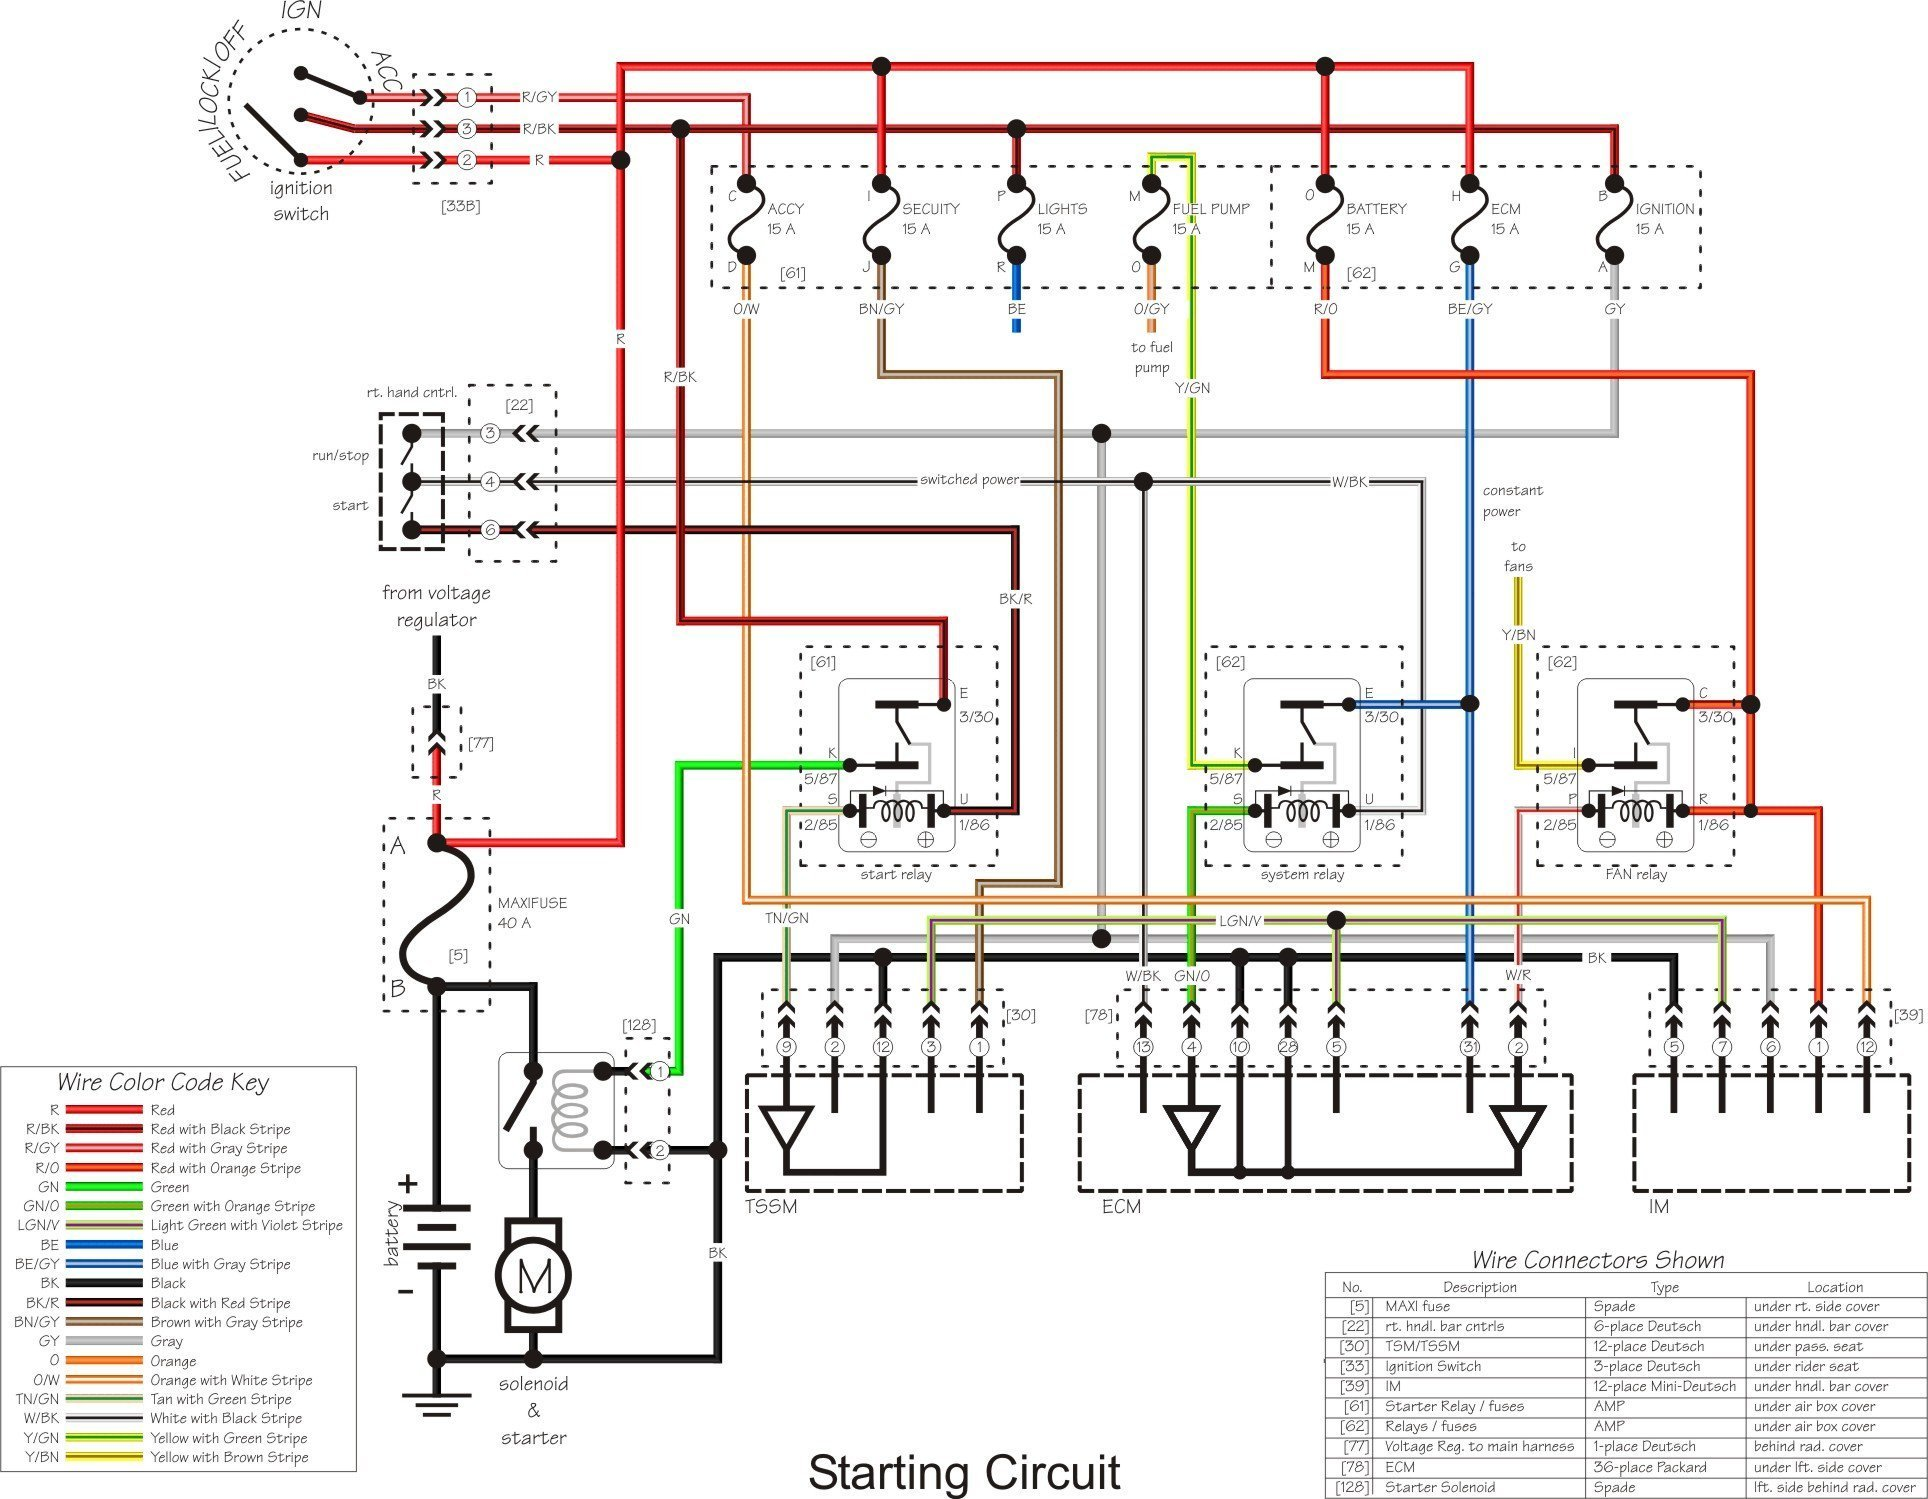 Ignition Wiring Diagram The 1 Harley Davidson V Rod Forum Wired